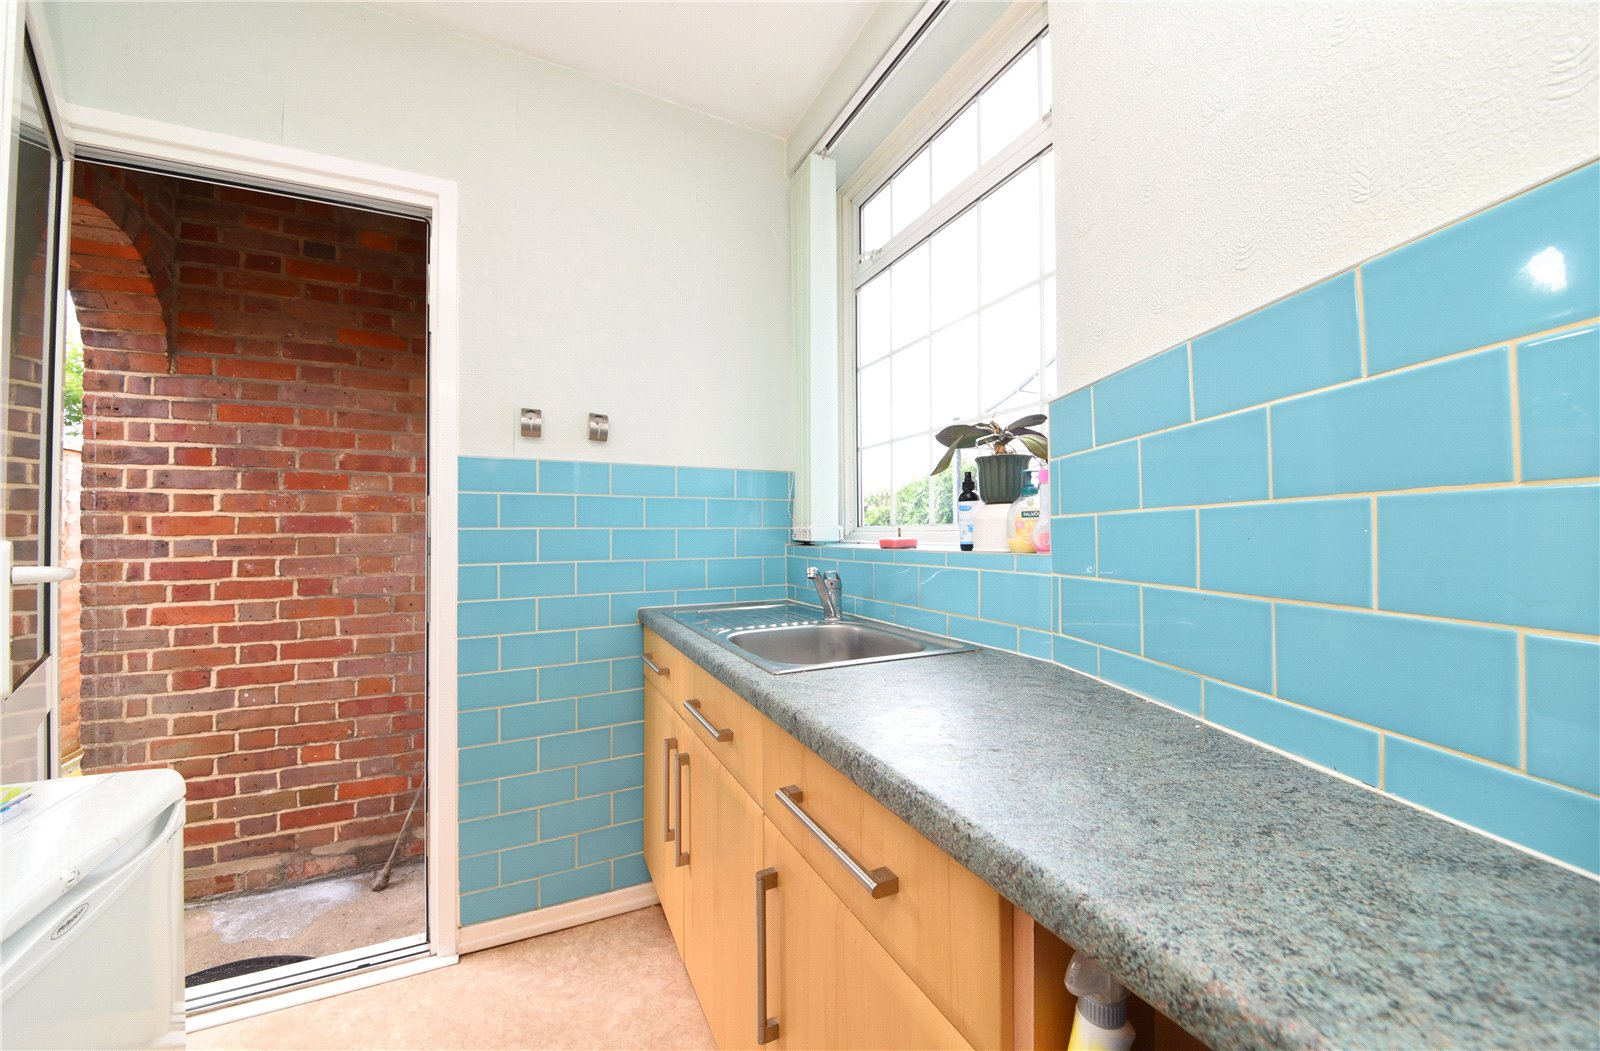 3 bed house for sale in London, N12 9ND  - Property Image 7